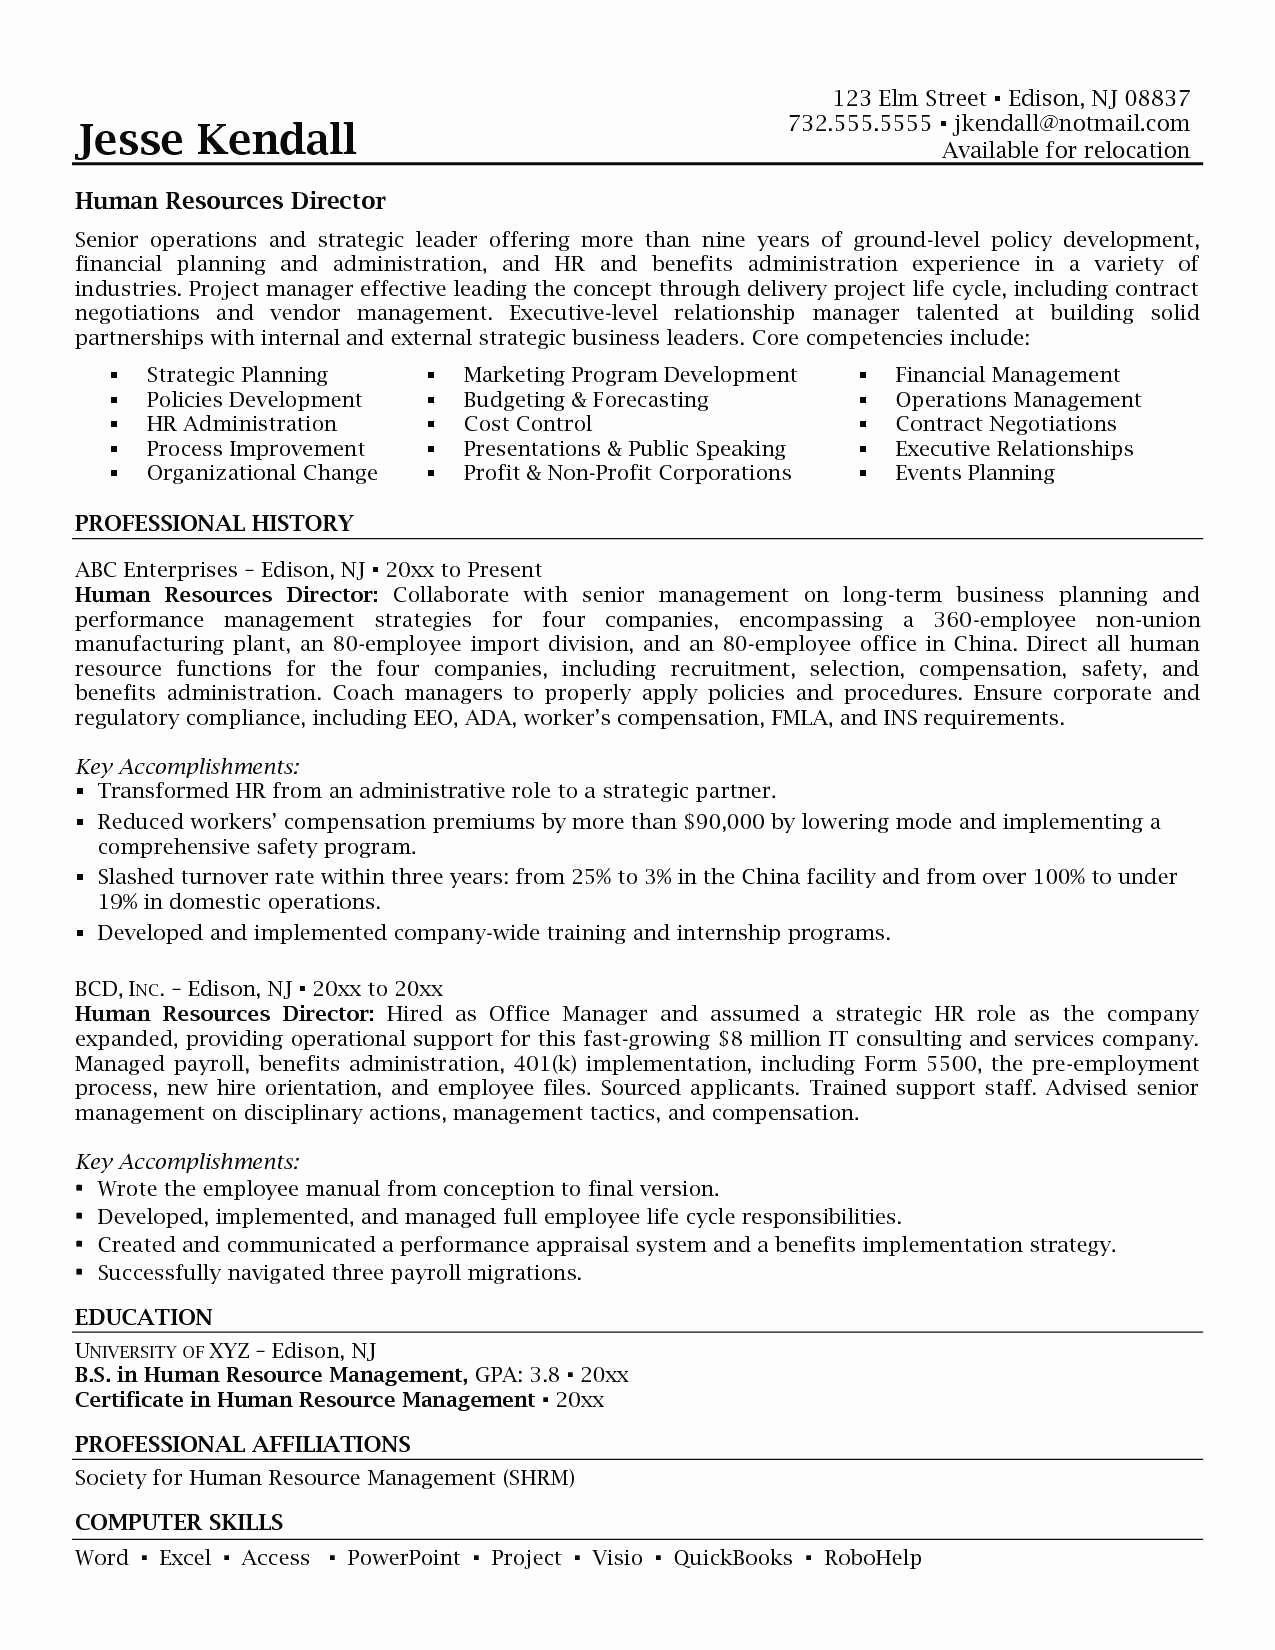 Elegant Job Description Questionnaire Template Shrm